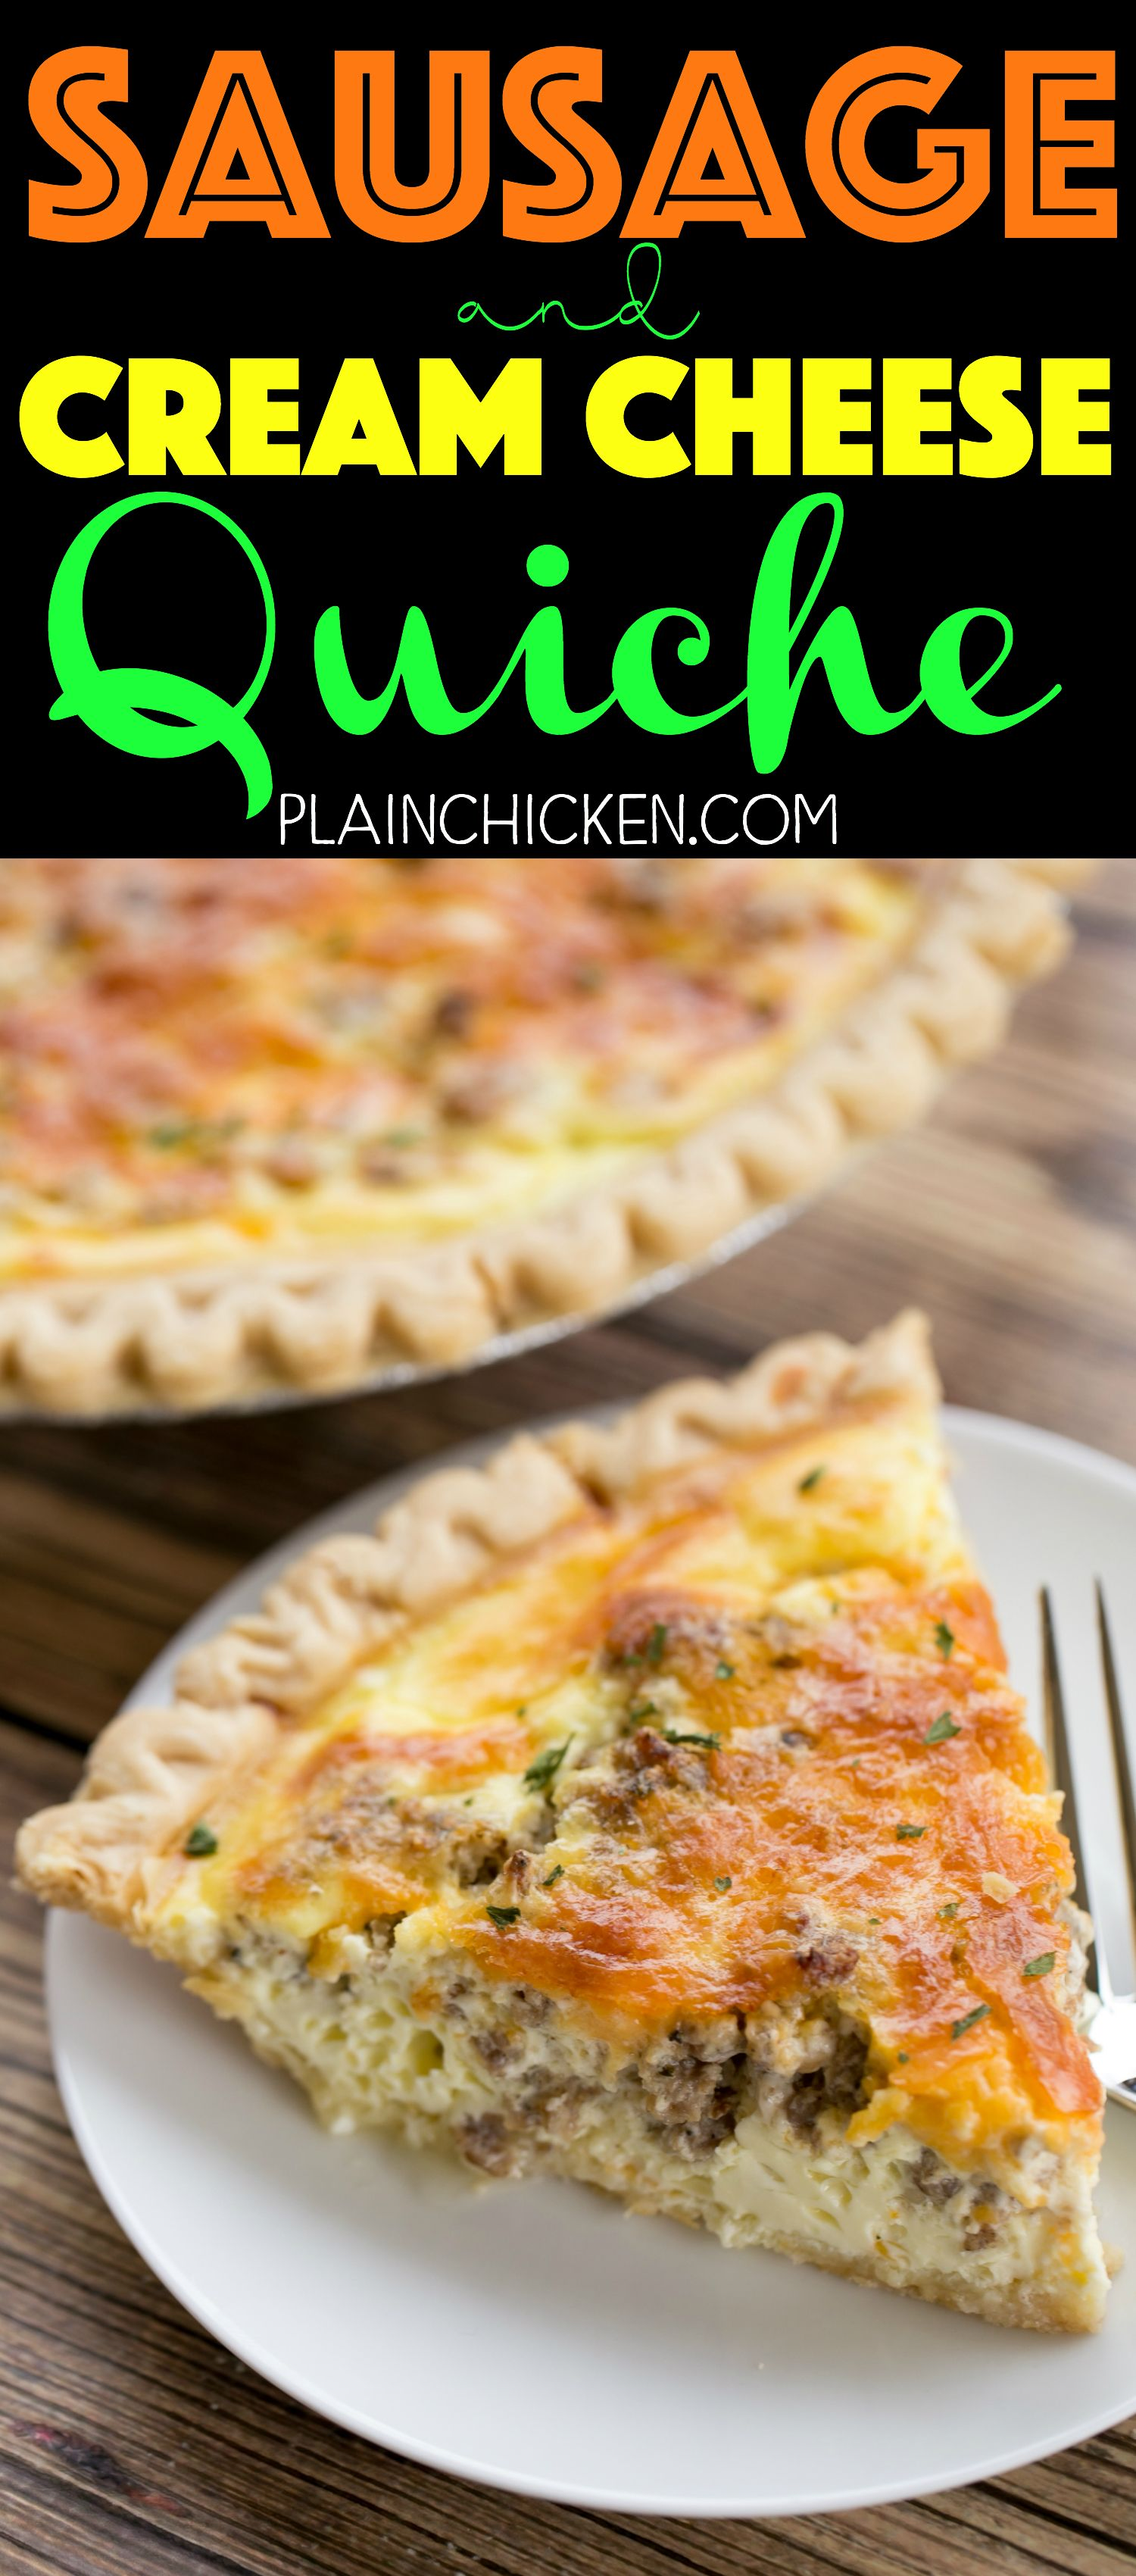 Sausage And Cream Cheese Quiche So Quick And Easy Everyone Loved This Recipe Can Make Ahead An Breakfast Quiche Recipes Quiche Recipes Easy Quiche Recipes